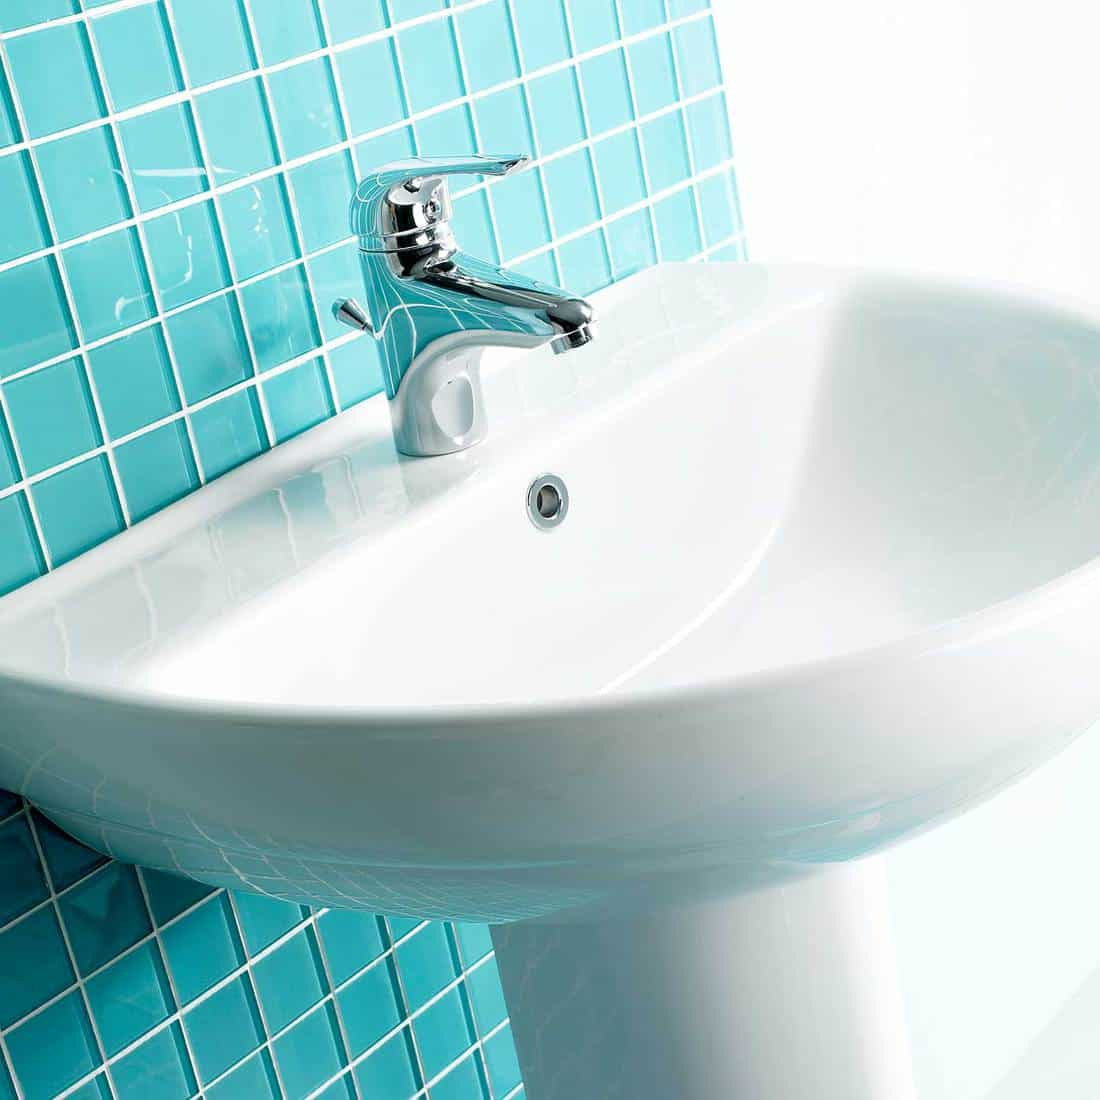 White wash basin with chrome faucet and teal wall tiles